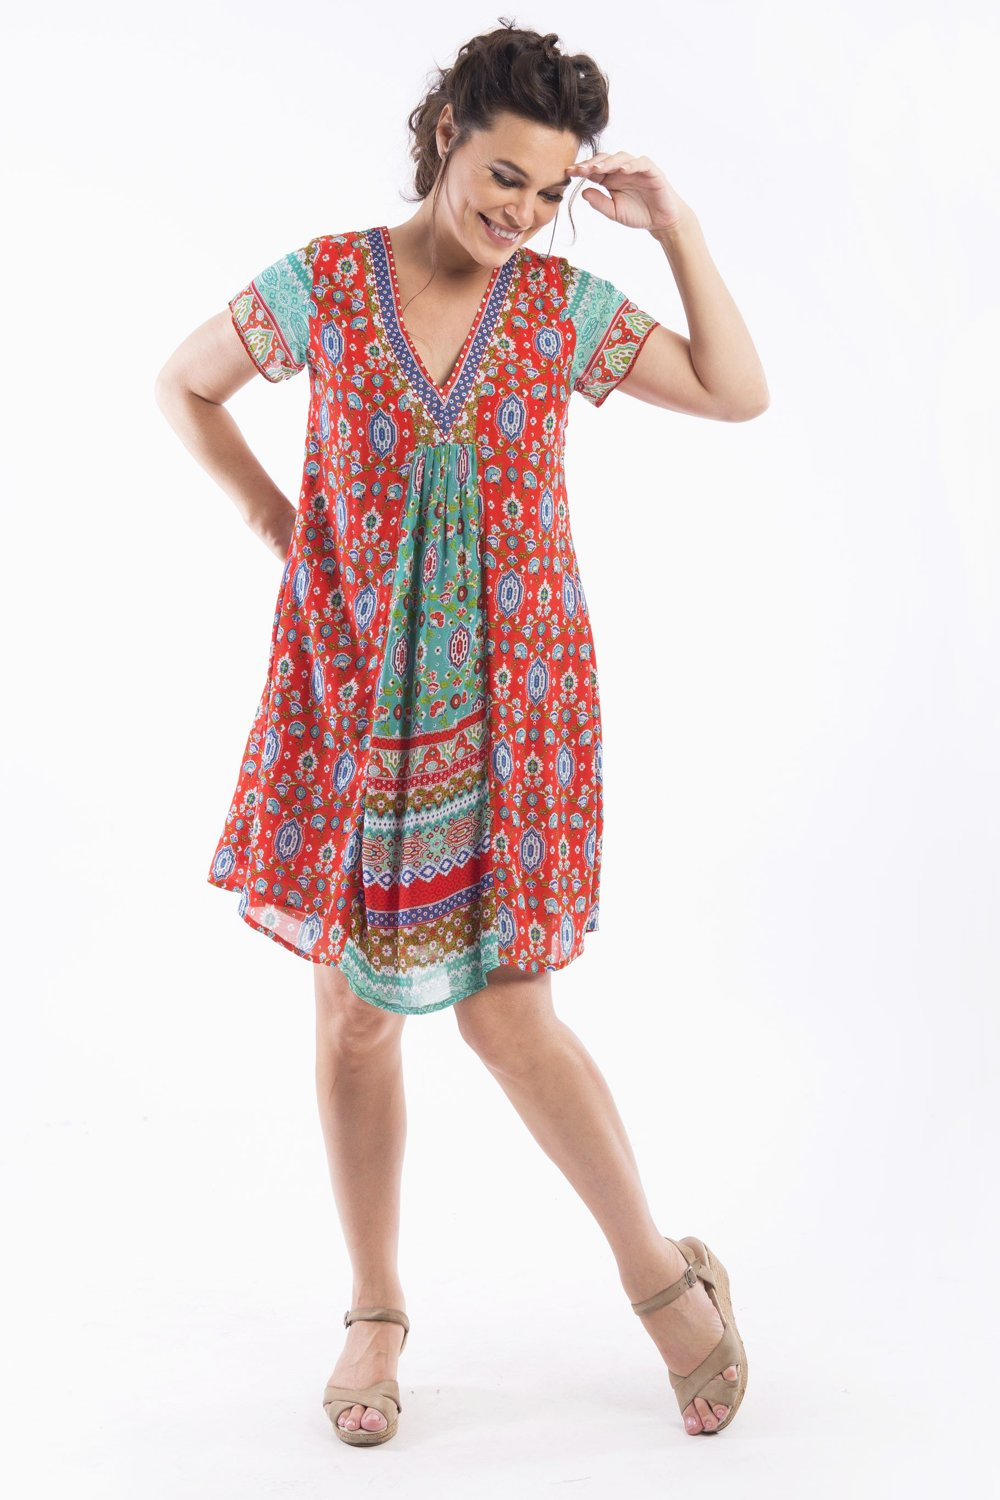 Easy Fit Kashi Tunic Dress | I Love Tunics | Tunic Tops | Tunic Dresses | Women's Tops | Plus Size Australia | Mature Fashion